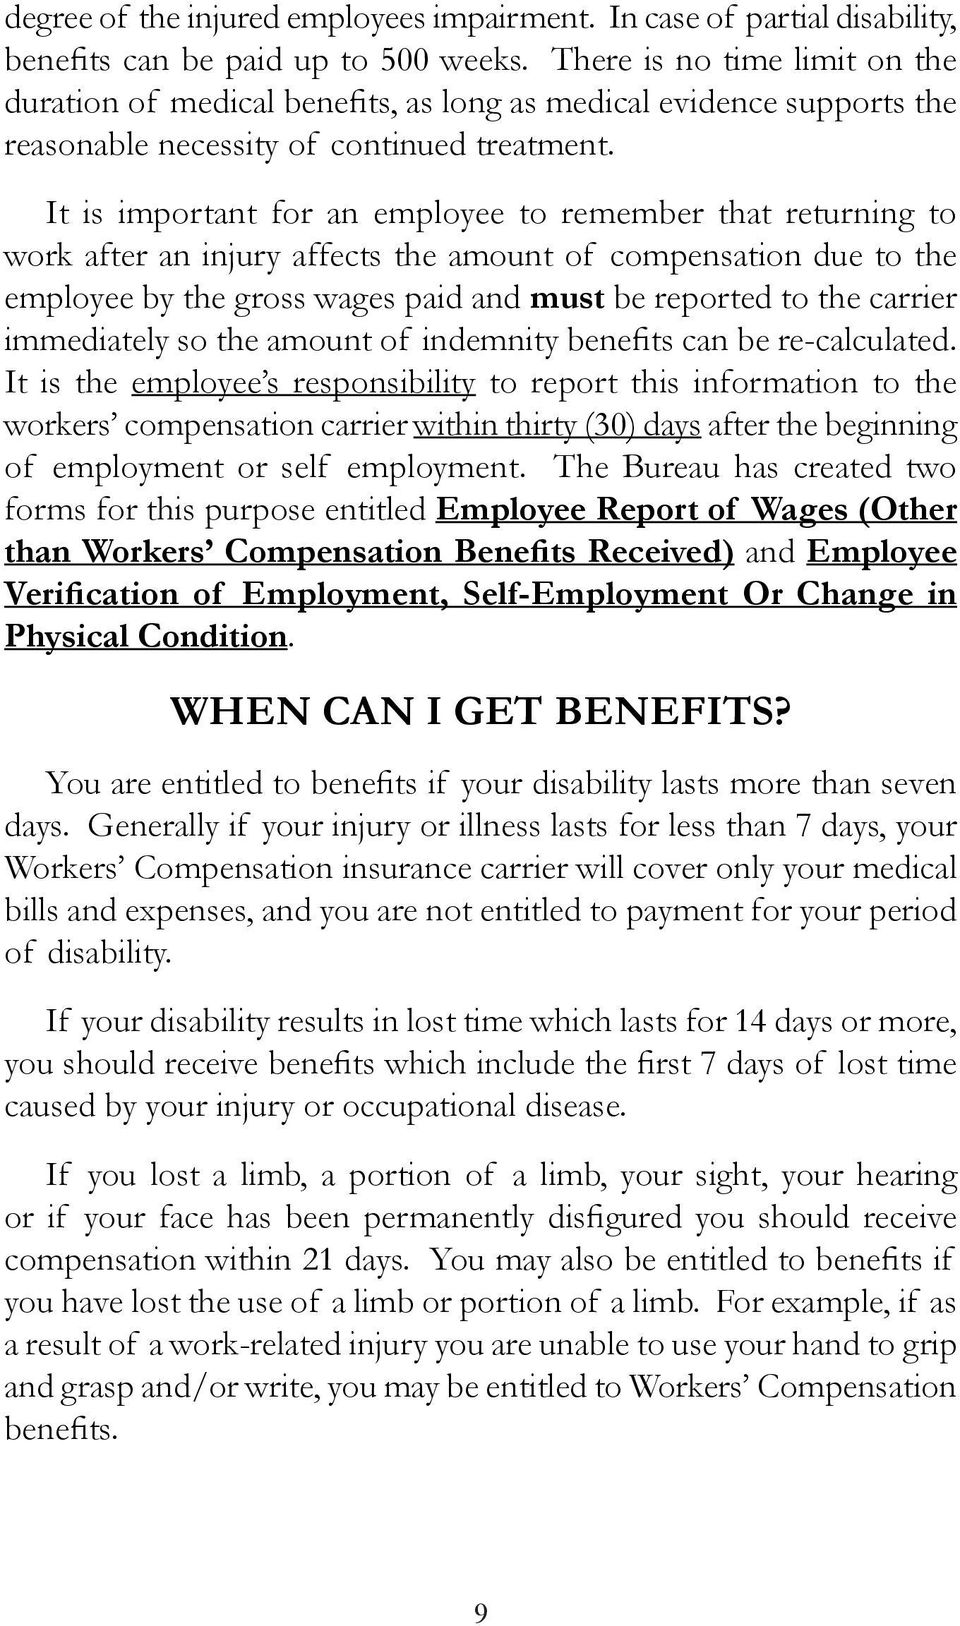 It is important for an employee to remember that returning to work after an injury affects the amount of compensation due to the employee by the gross wages paid and must be reported to the carrier